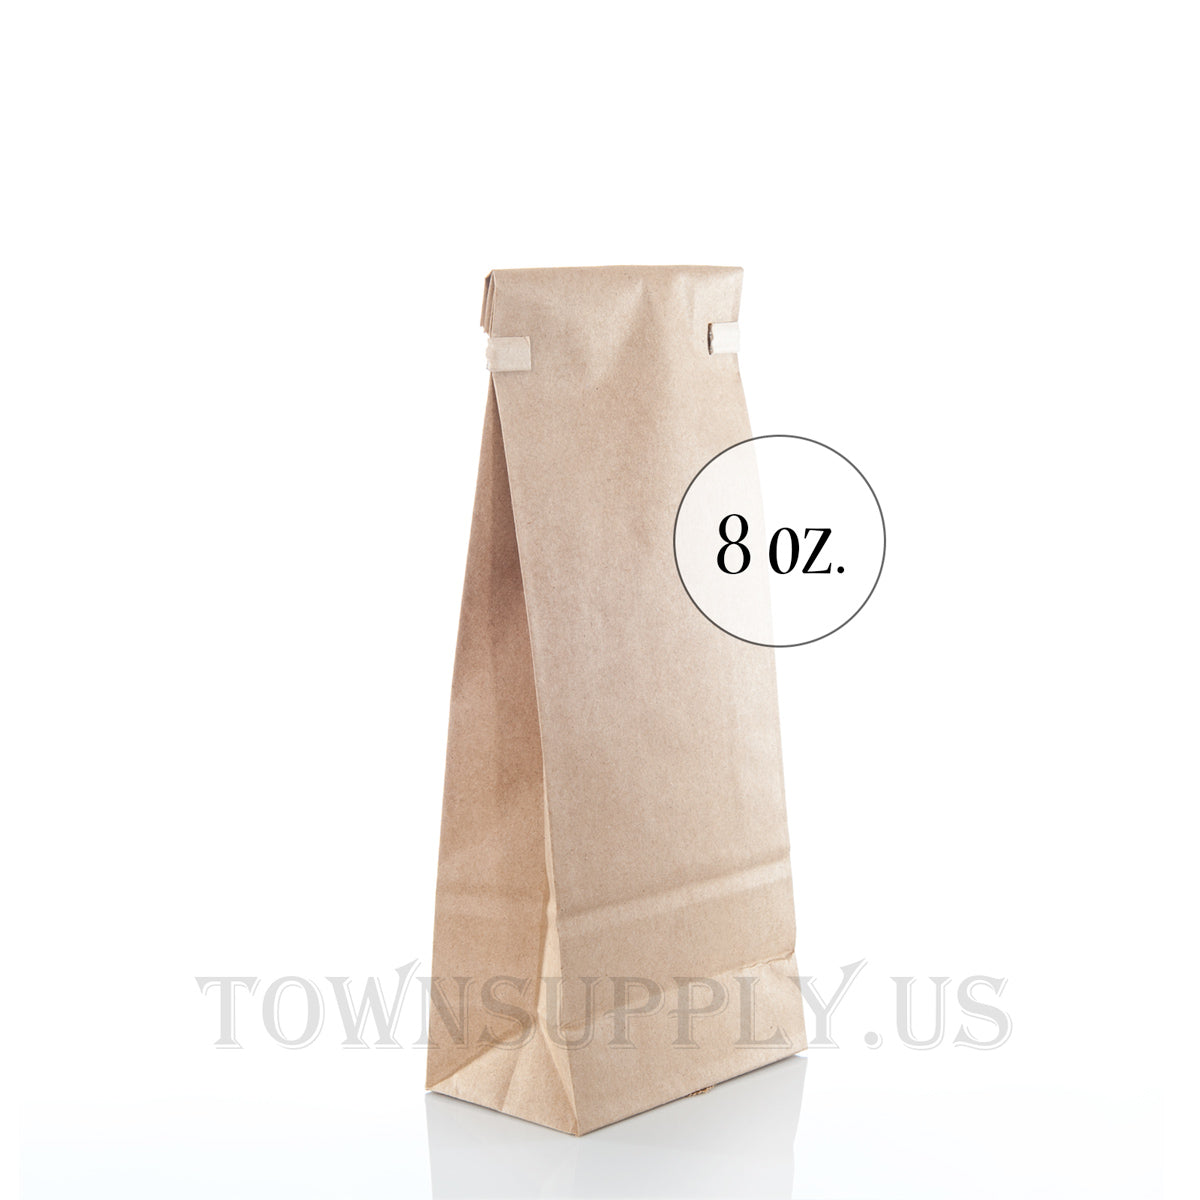 eco-friendly compostable 8 oz. natural kraft gusseted bags with tin tie closure - Town Supply